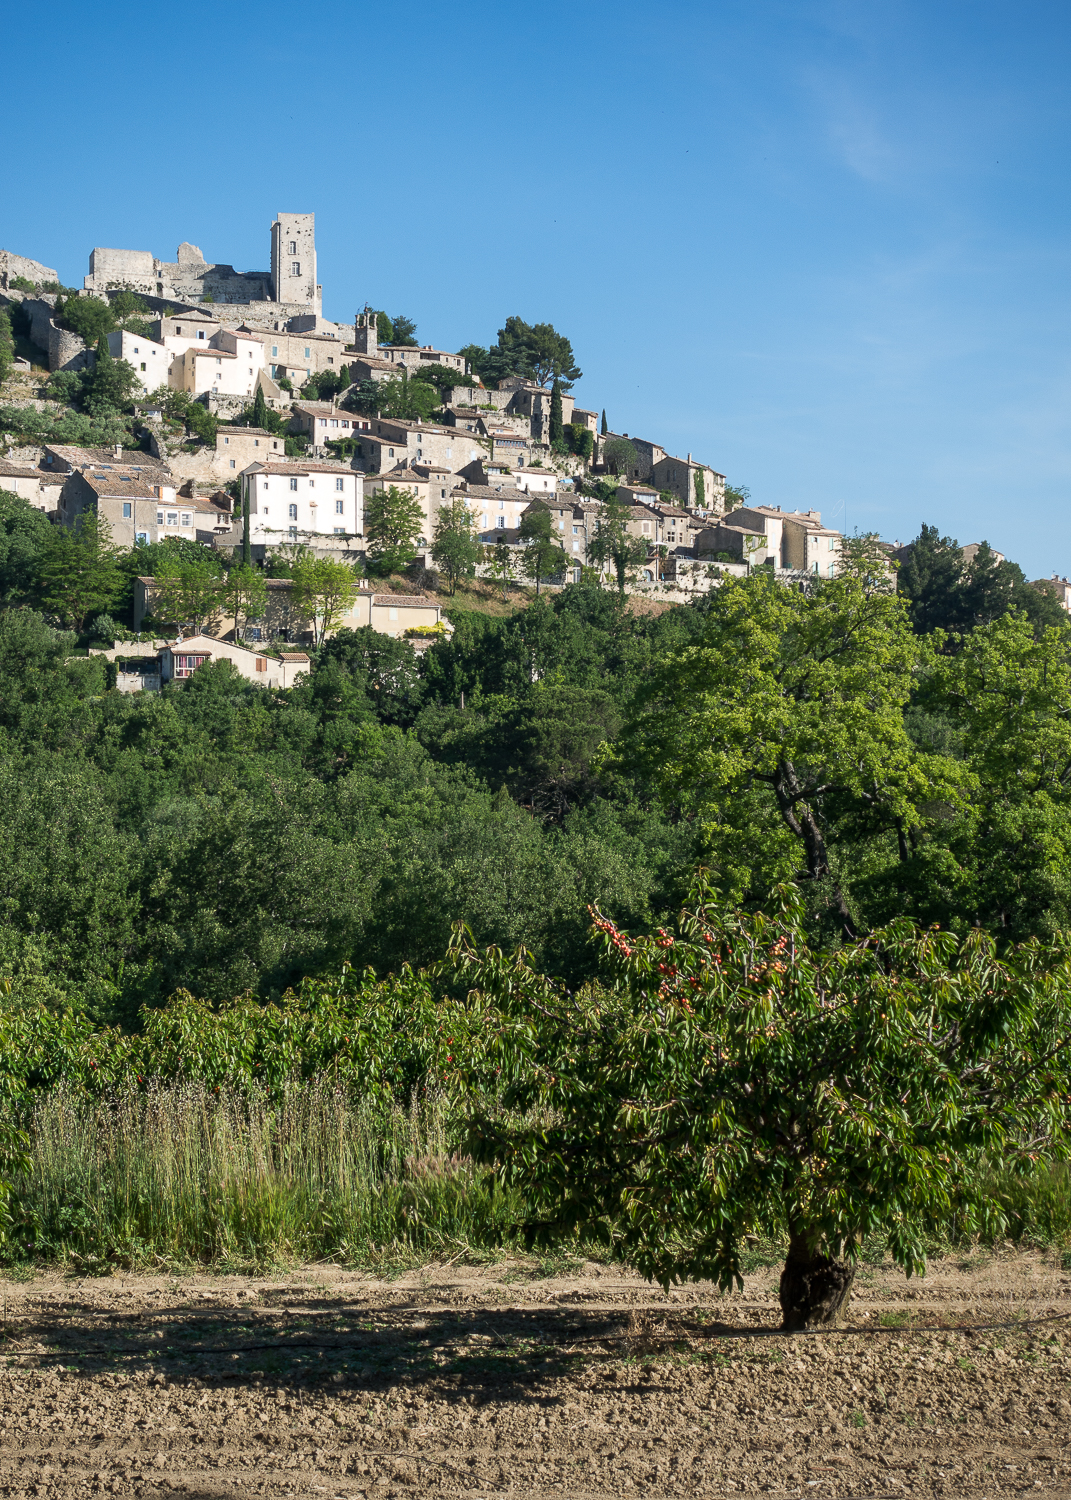 View of Lacoste, France.